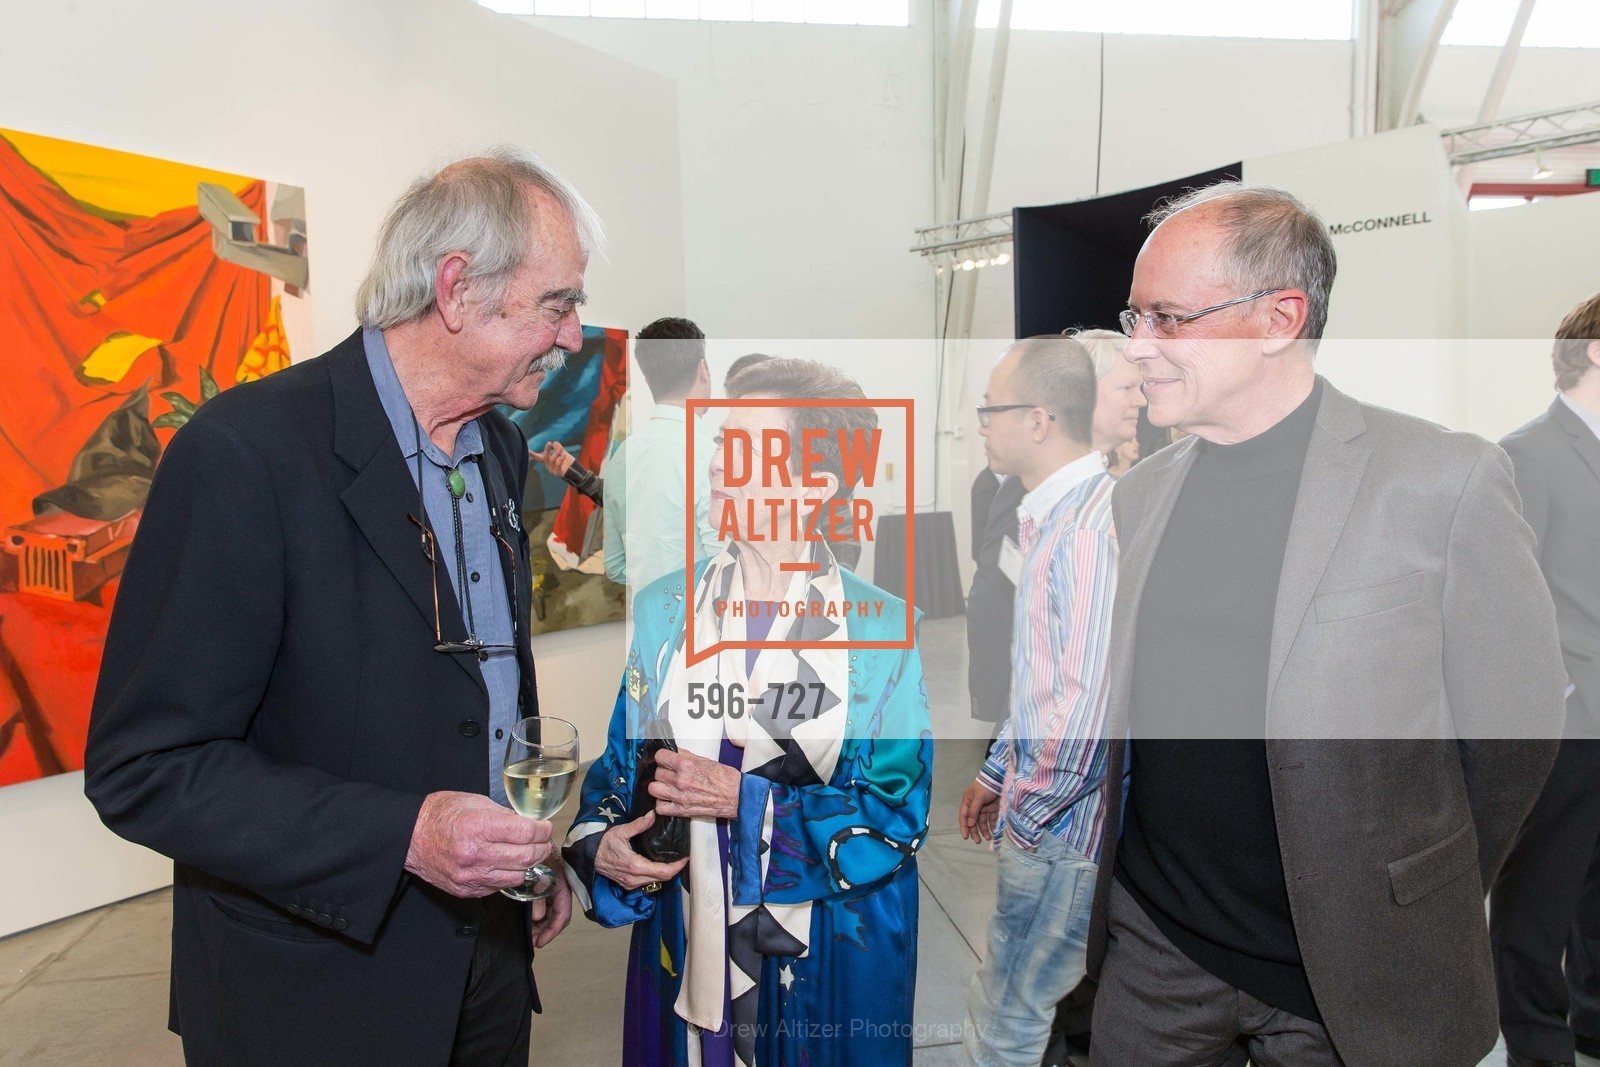 William Wiley, Cissie Swig, Charles Desmarais, SAN FRANCISCO ART INSTITUTE Gala Honoring Art Visionary and Advocate ROSELYNE CHROMAN SWIG, US, May 13th, 2015,Drew Altizer, Drew Altizer Photography, full-service agency, private events, San Francisco photographer, photographer california